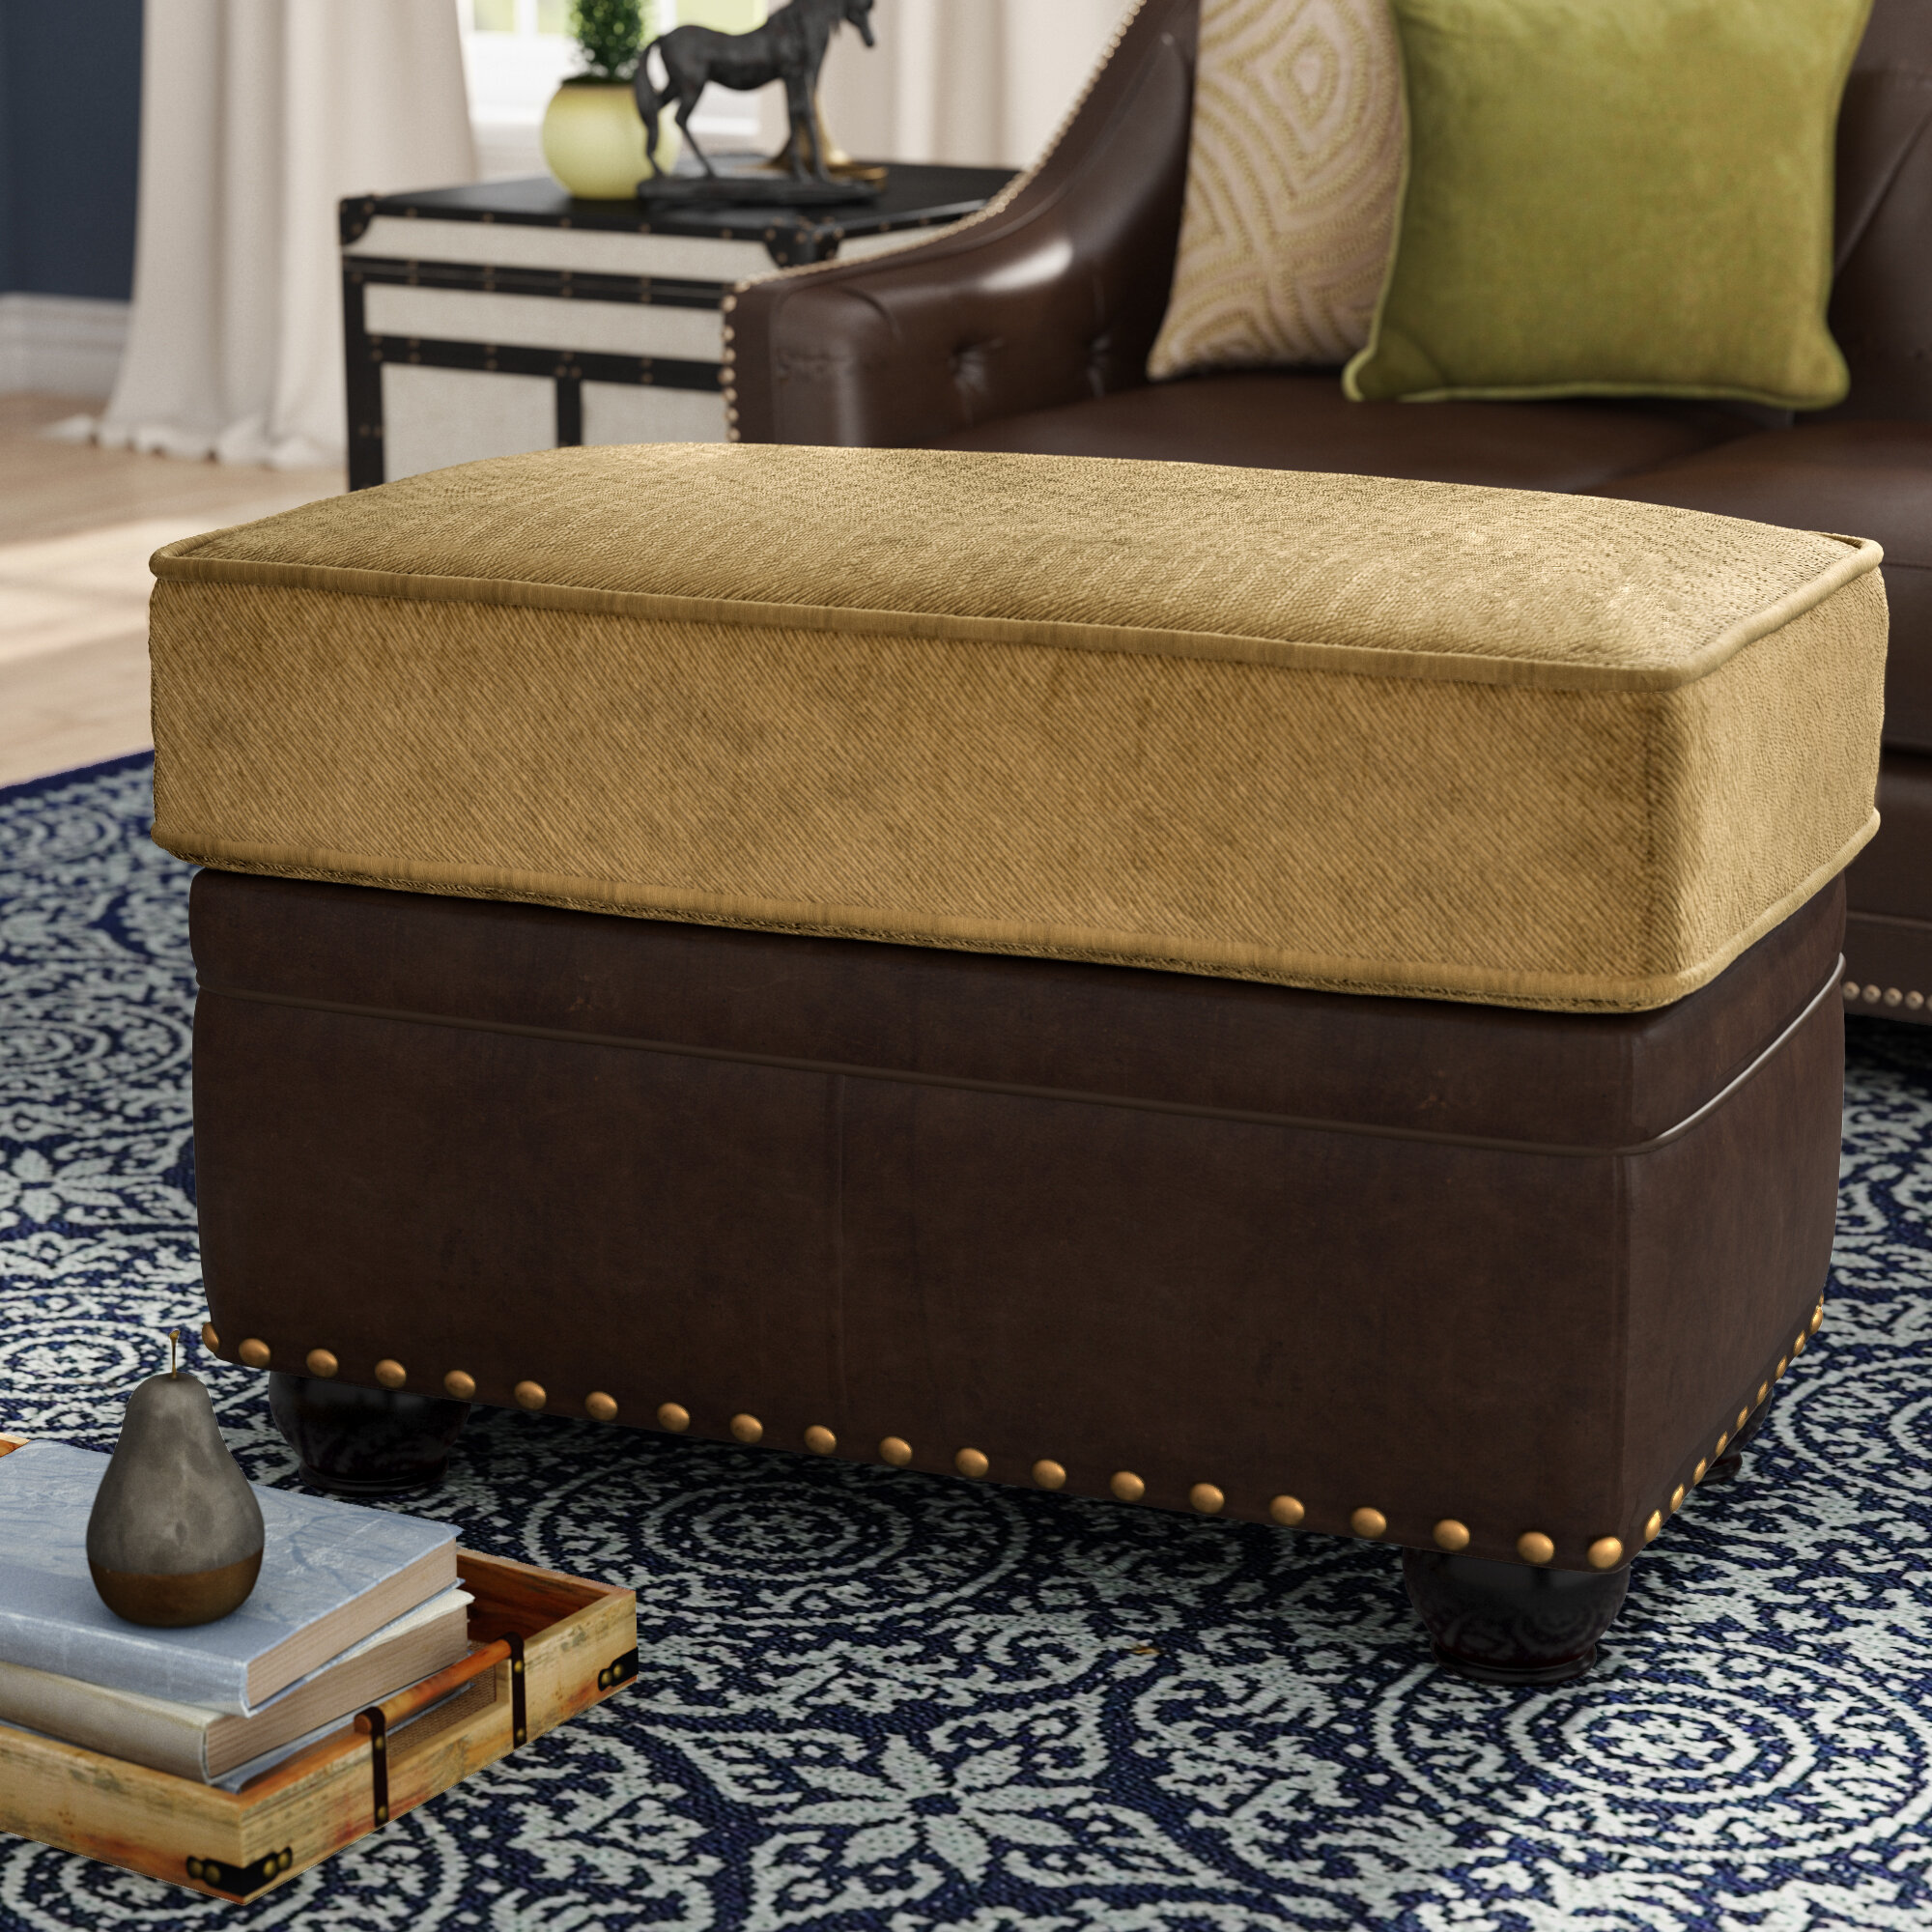 Surprising Darby Home Co Simmons Upholstery Aurora Ottoman Wayfair Pabps2019 Chair Design Images Pabps2019Com